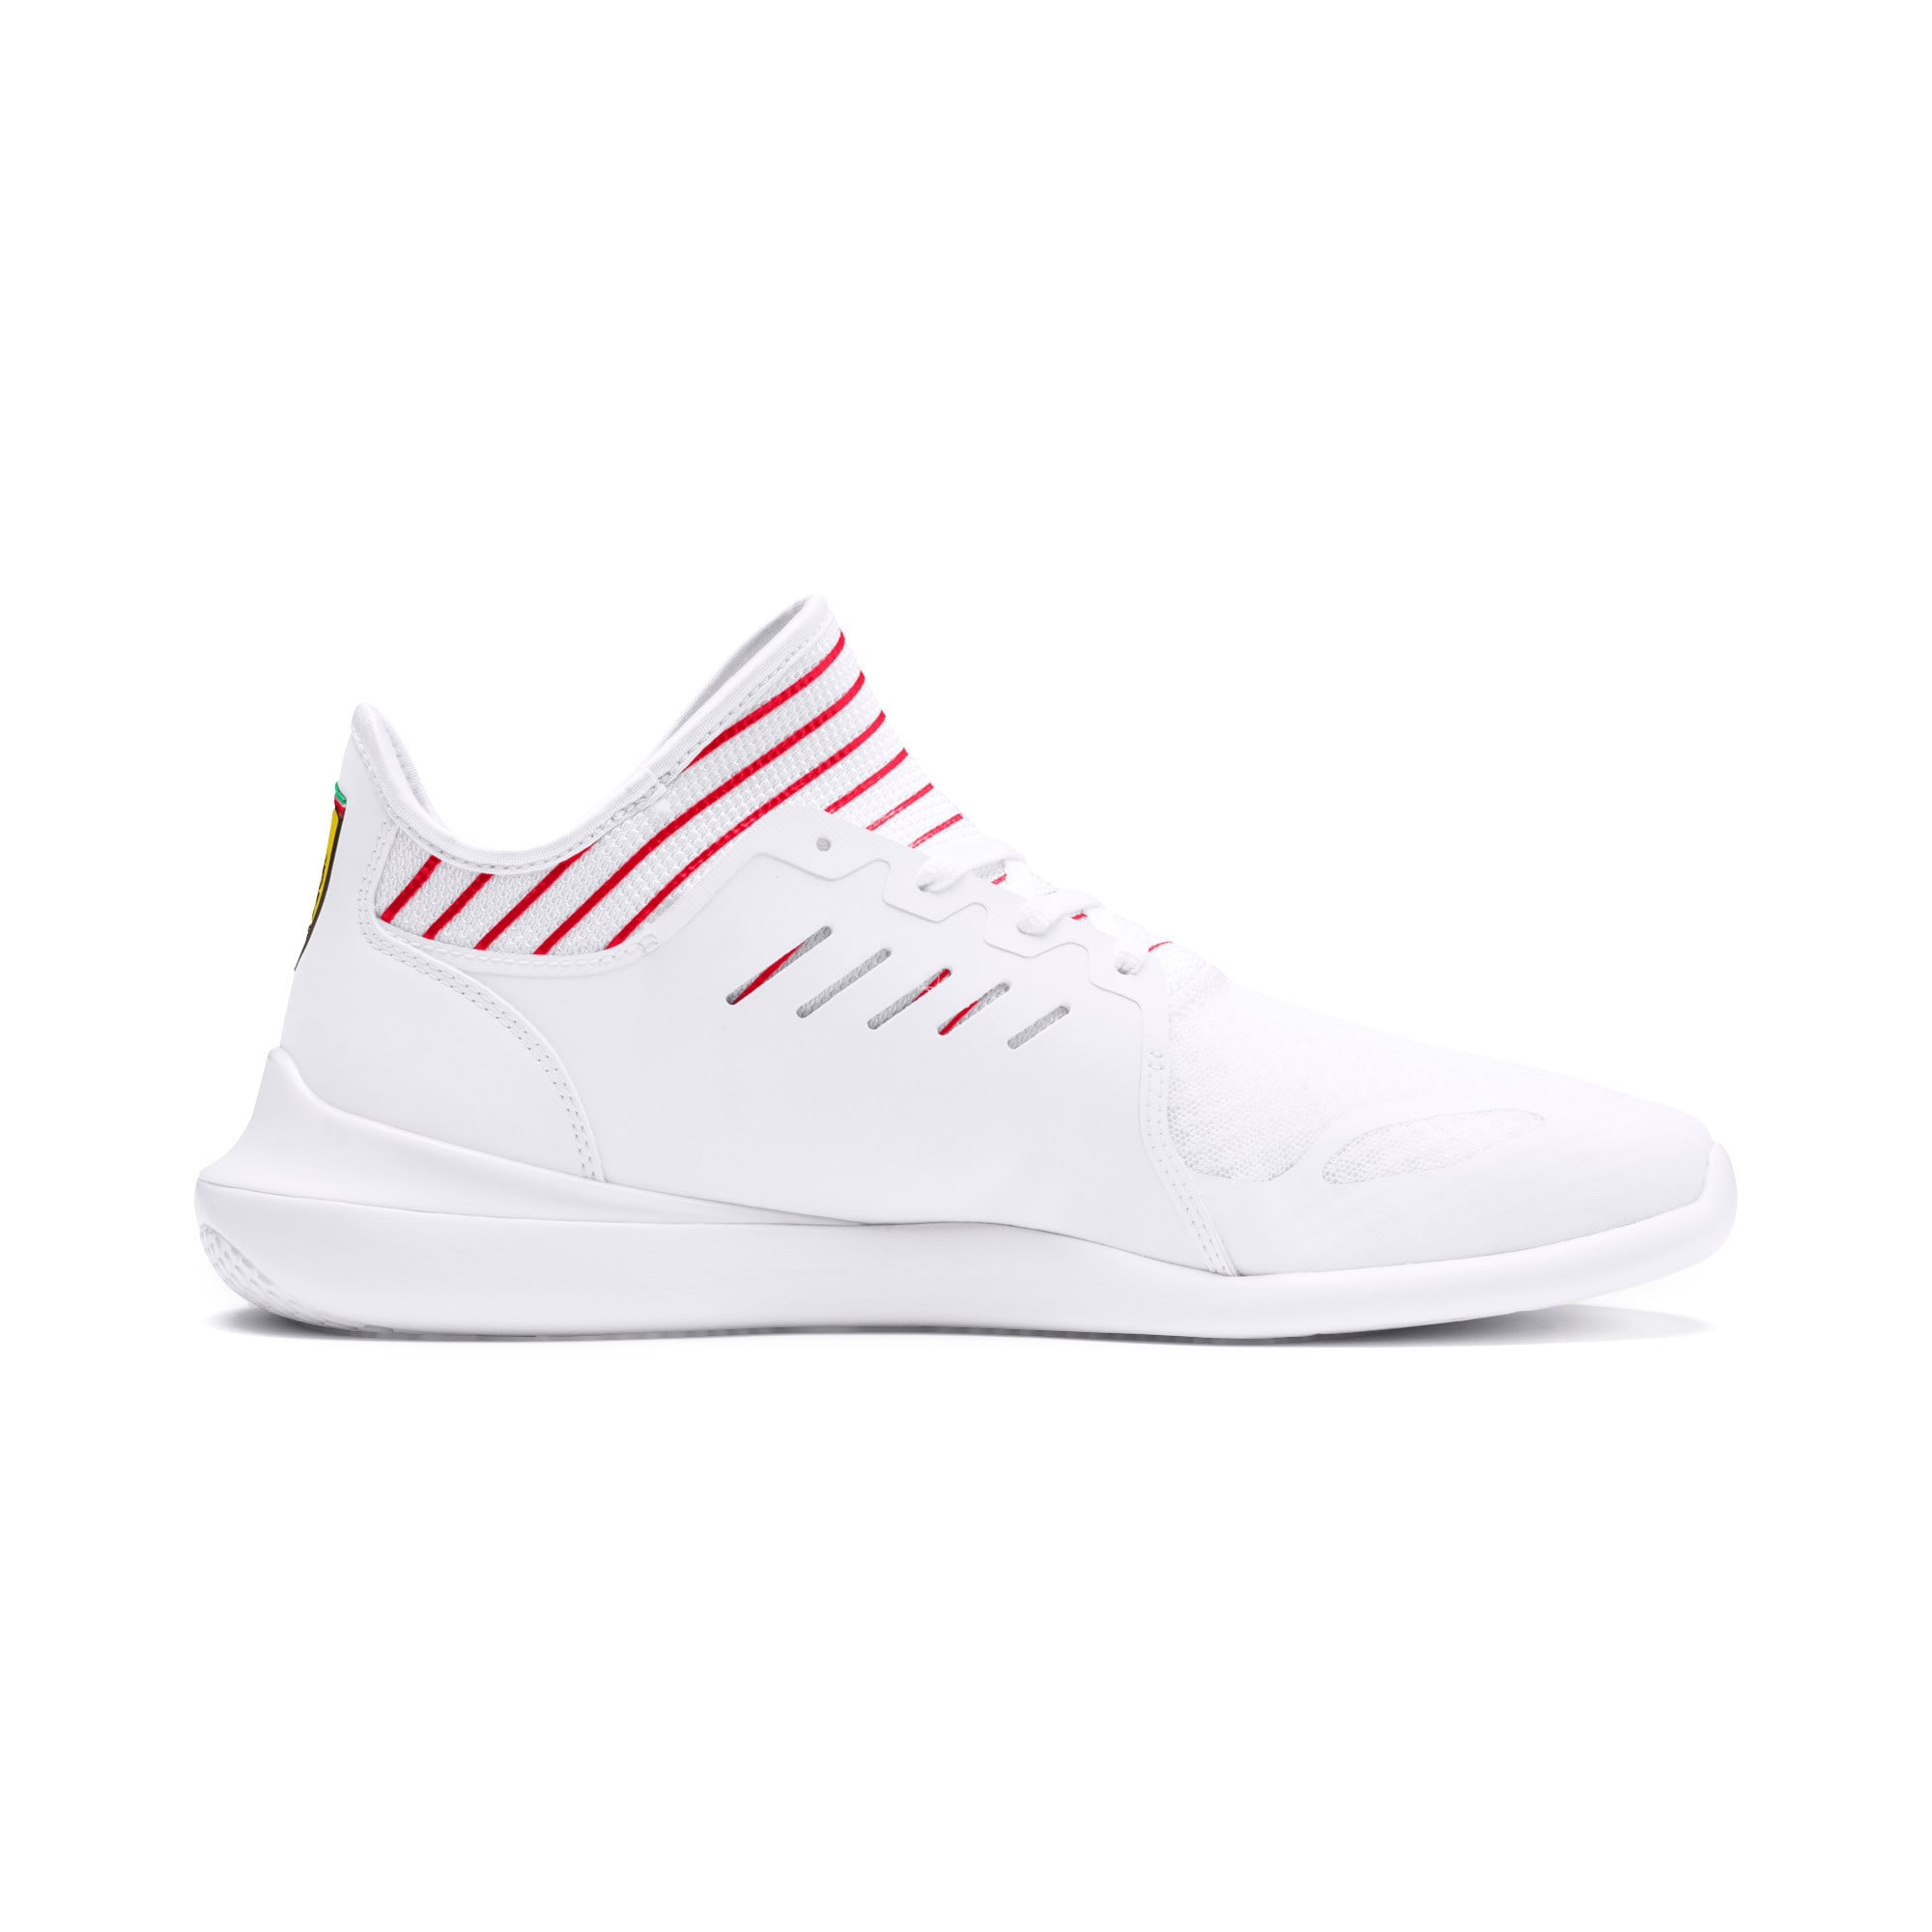 Thumbnail 6 of Scuderia Ferrari Evo Cat Mace Sneakers, Puma White-Rosso Corsa, medium